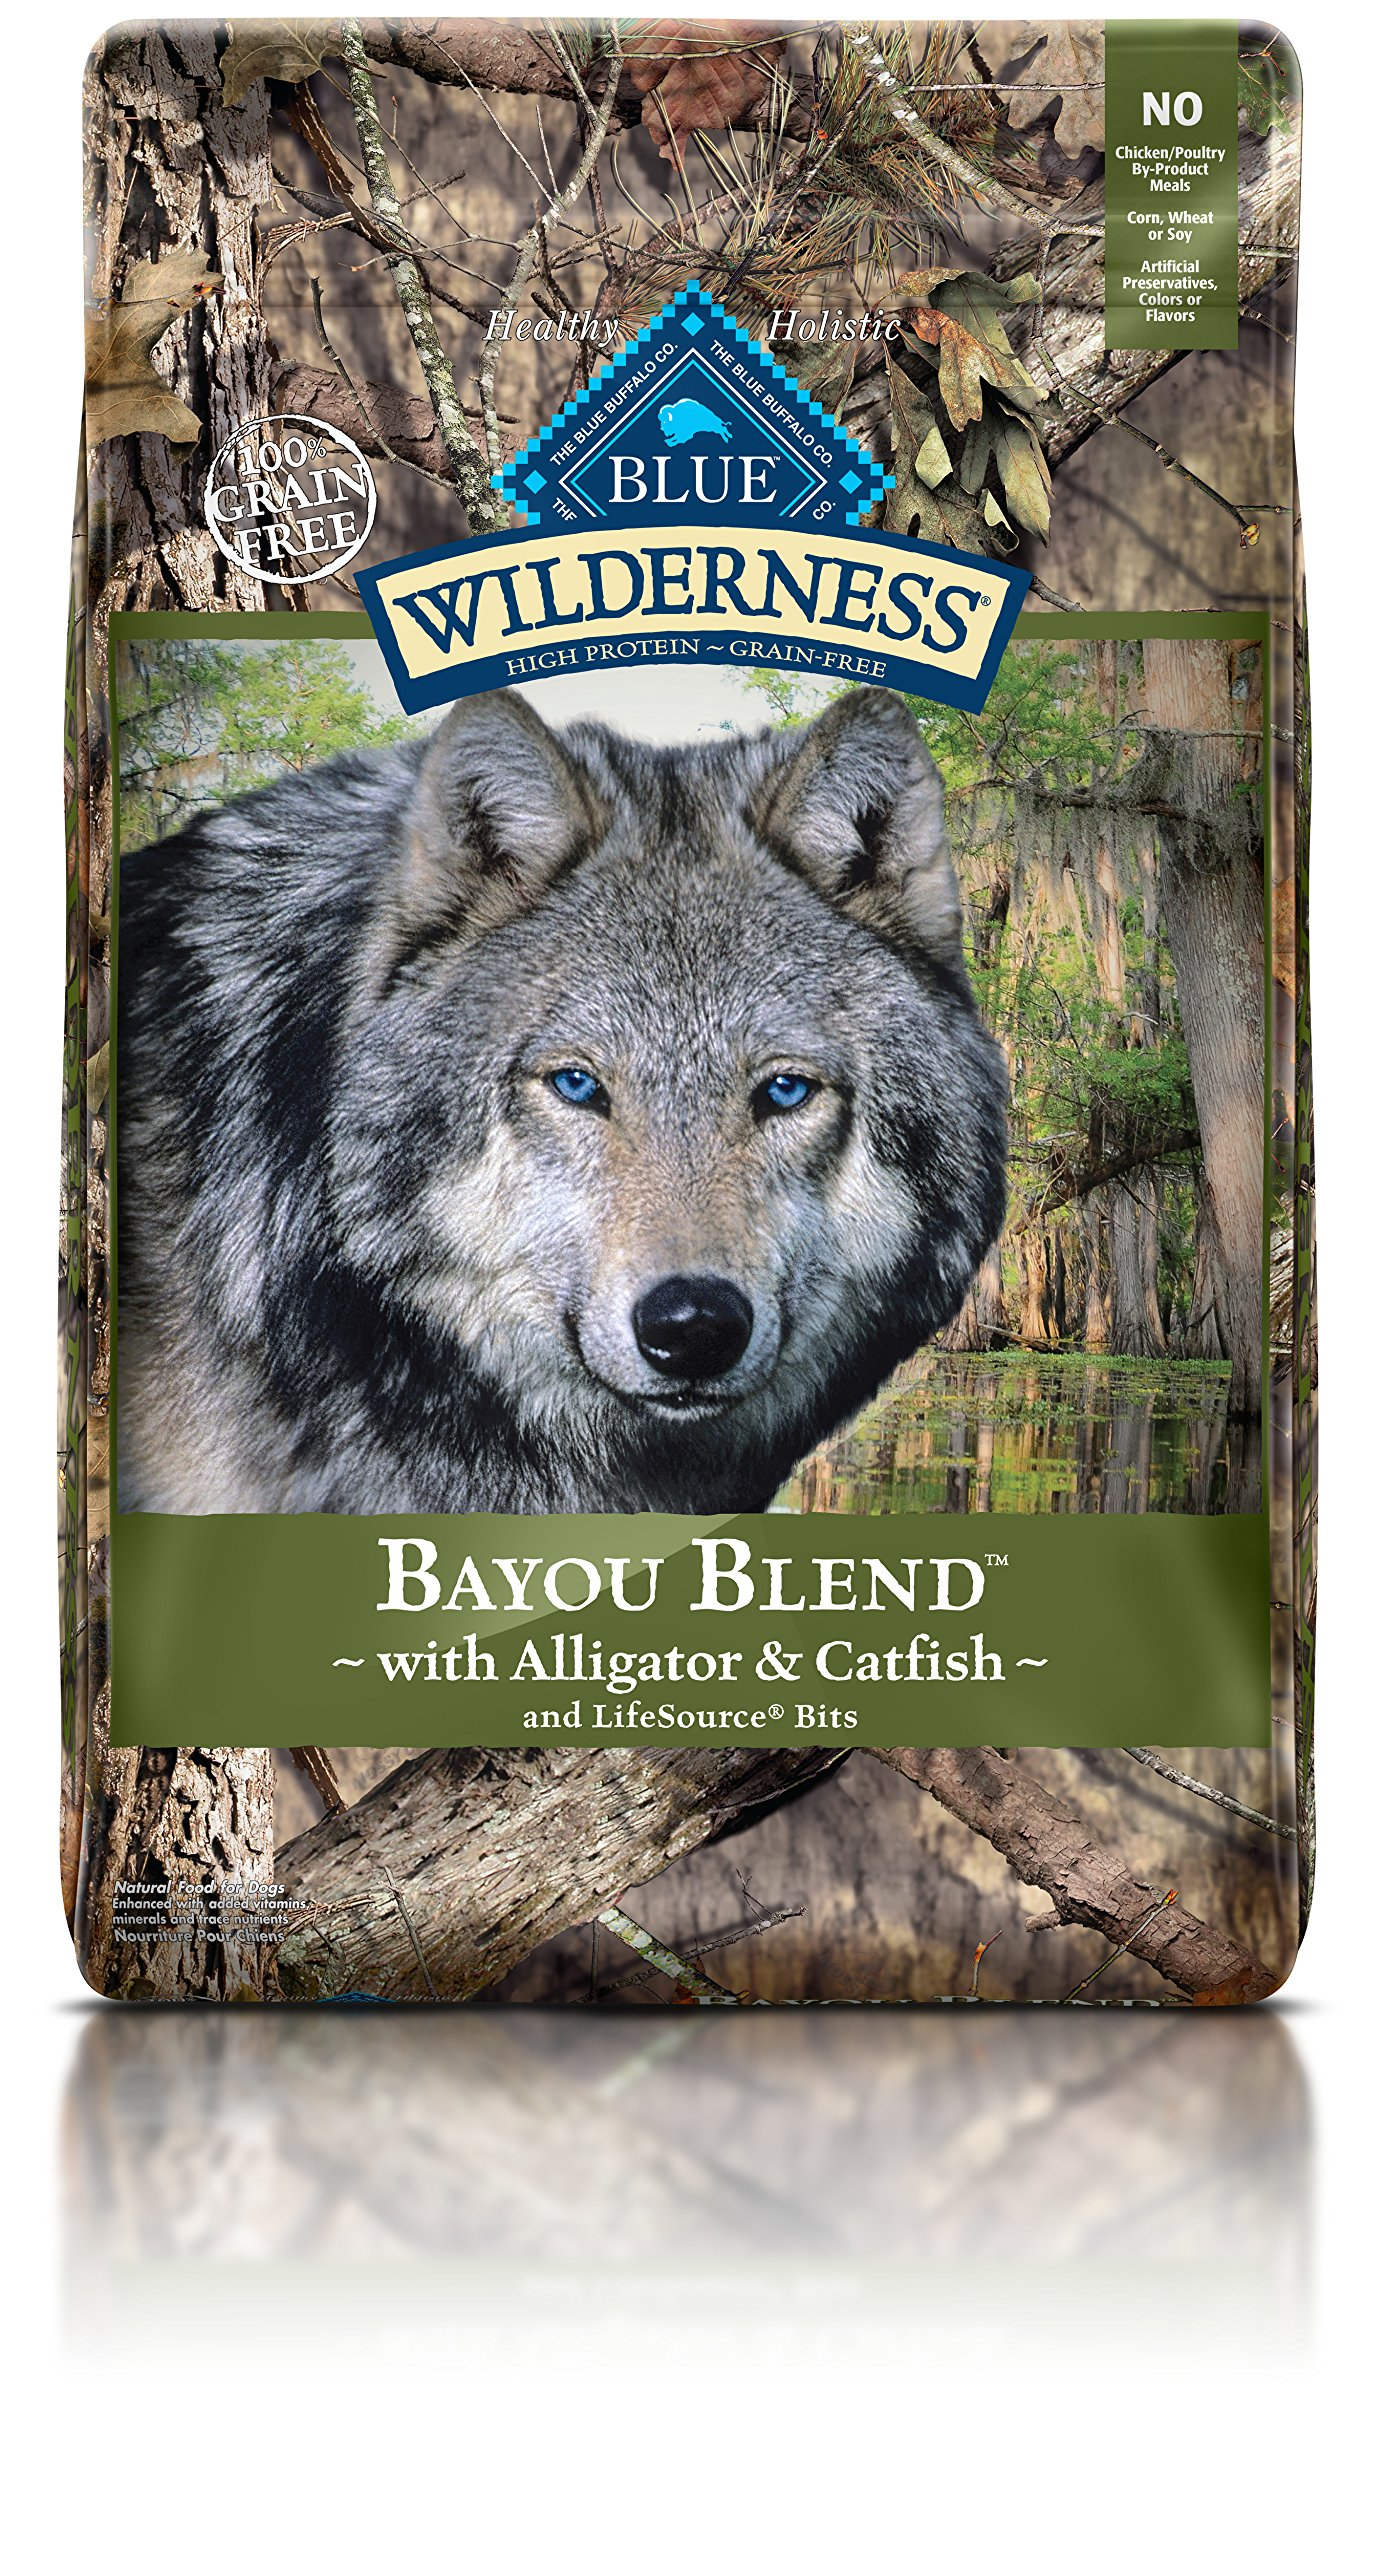 Blue Buffalo Wilderness High Protein Dry Adult Dog Food Bayou Blend 22 LB